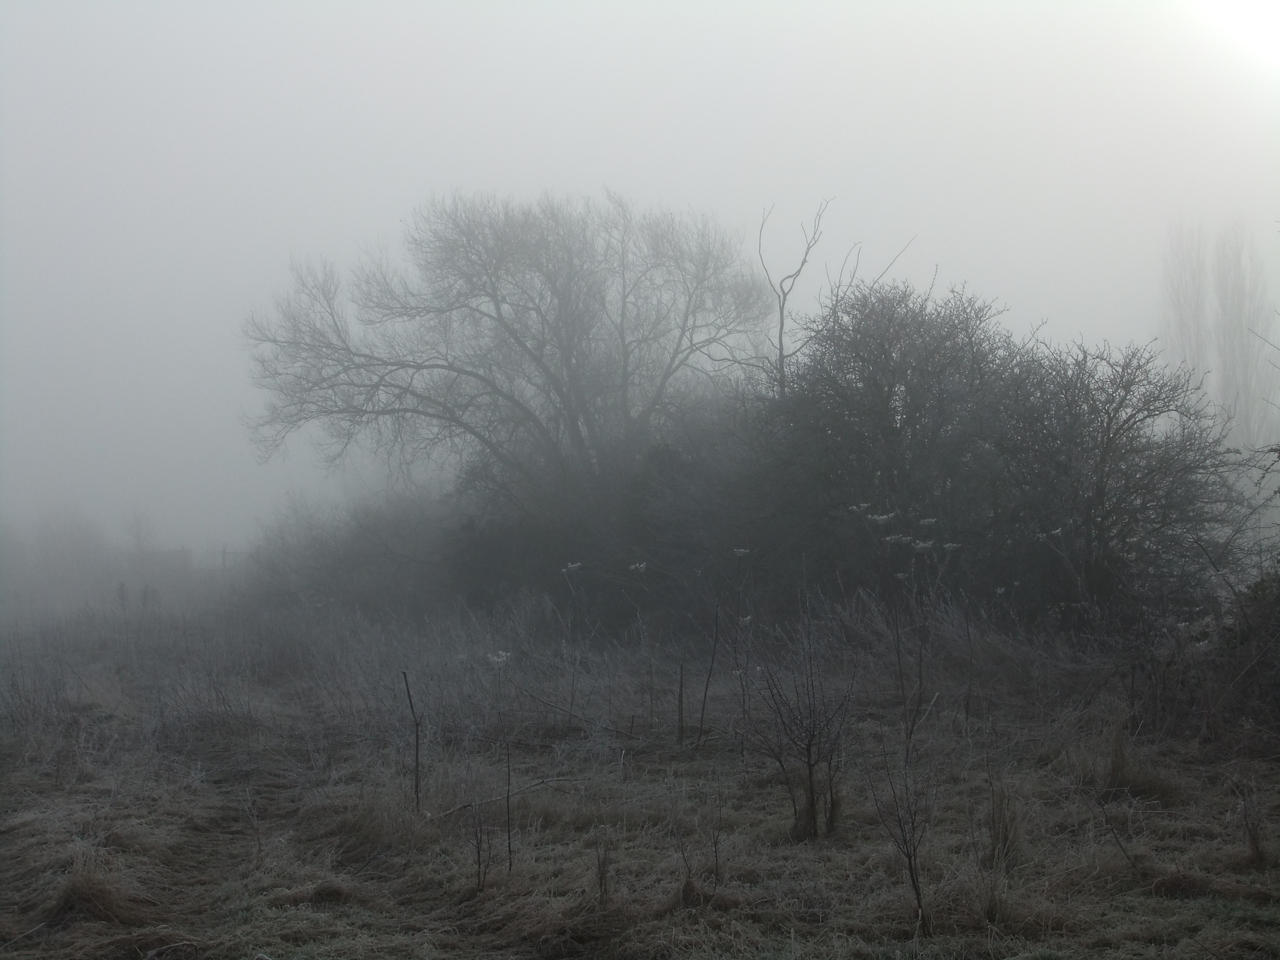 In the Mist 07: Hedgerow